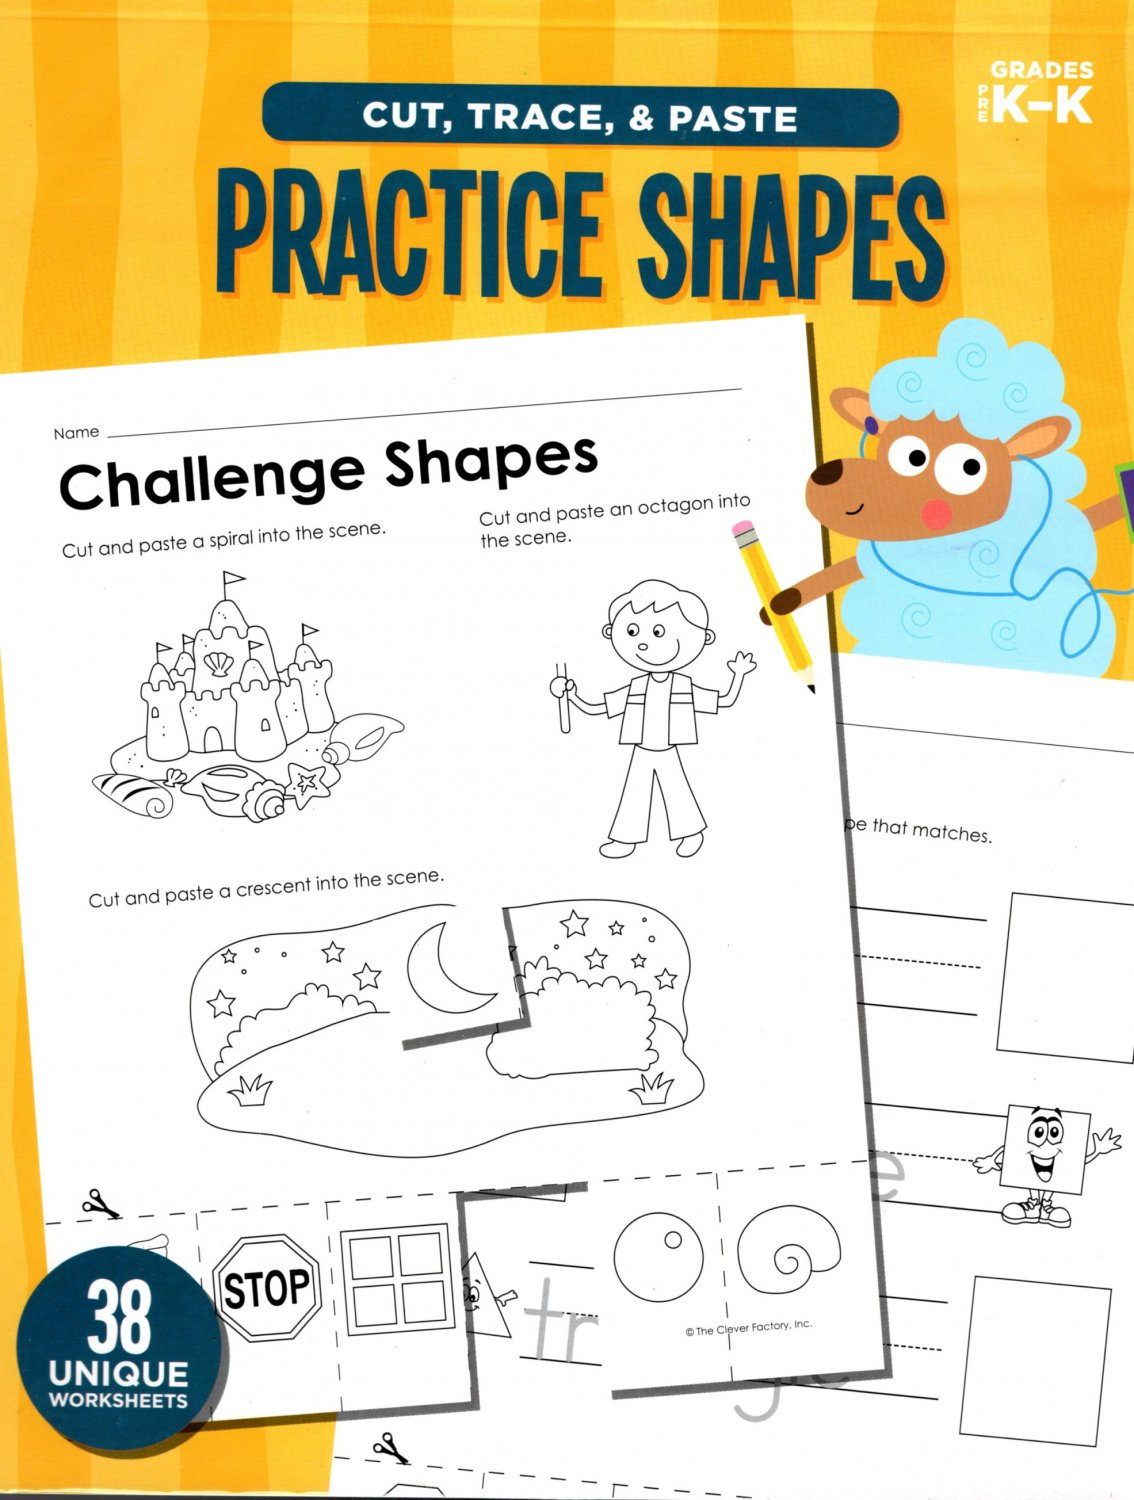 Cut, Trace, and Paste Practice Shapes - Reproducible Educational Workbook - Grades Pre-K - K